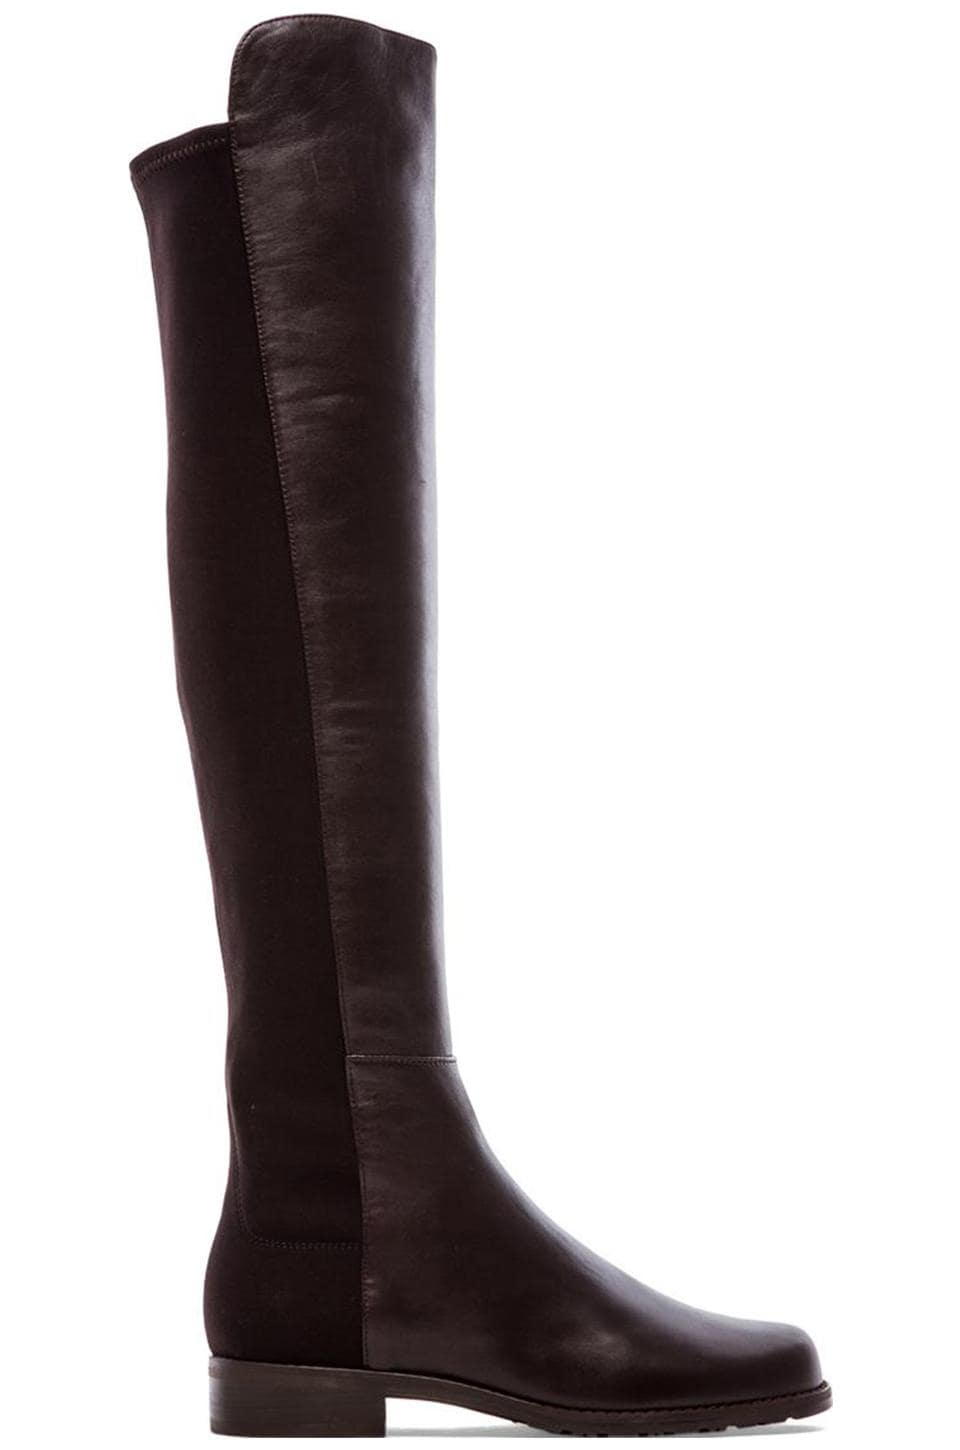 5050 Stretch Leather Boot by Stuart Weitzman